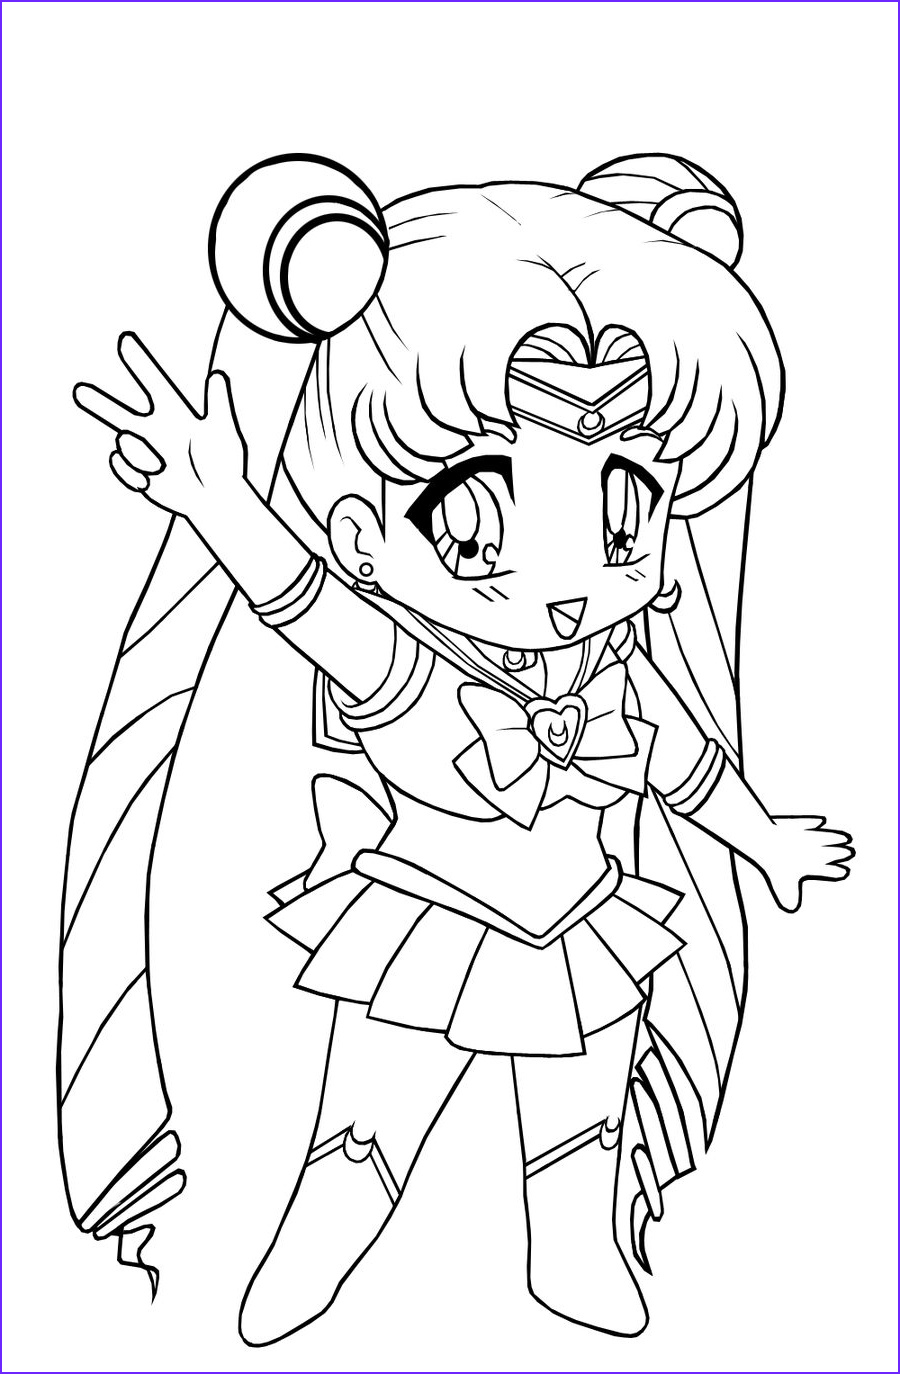 Free Printable Kids Coloring Pages Luxury Images Free Printable Chibi Coloring Pages for Kids